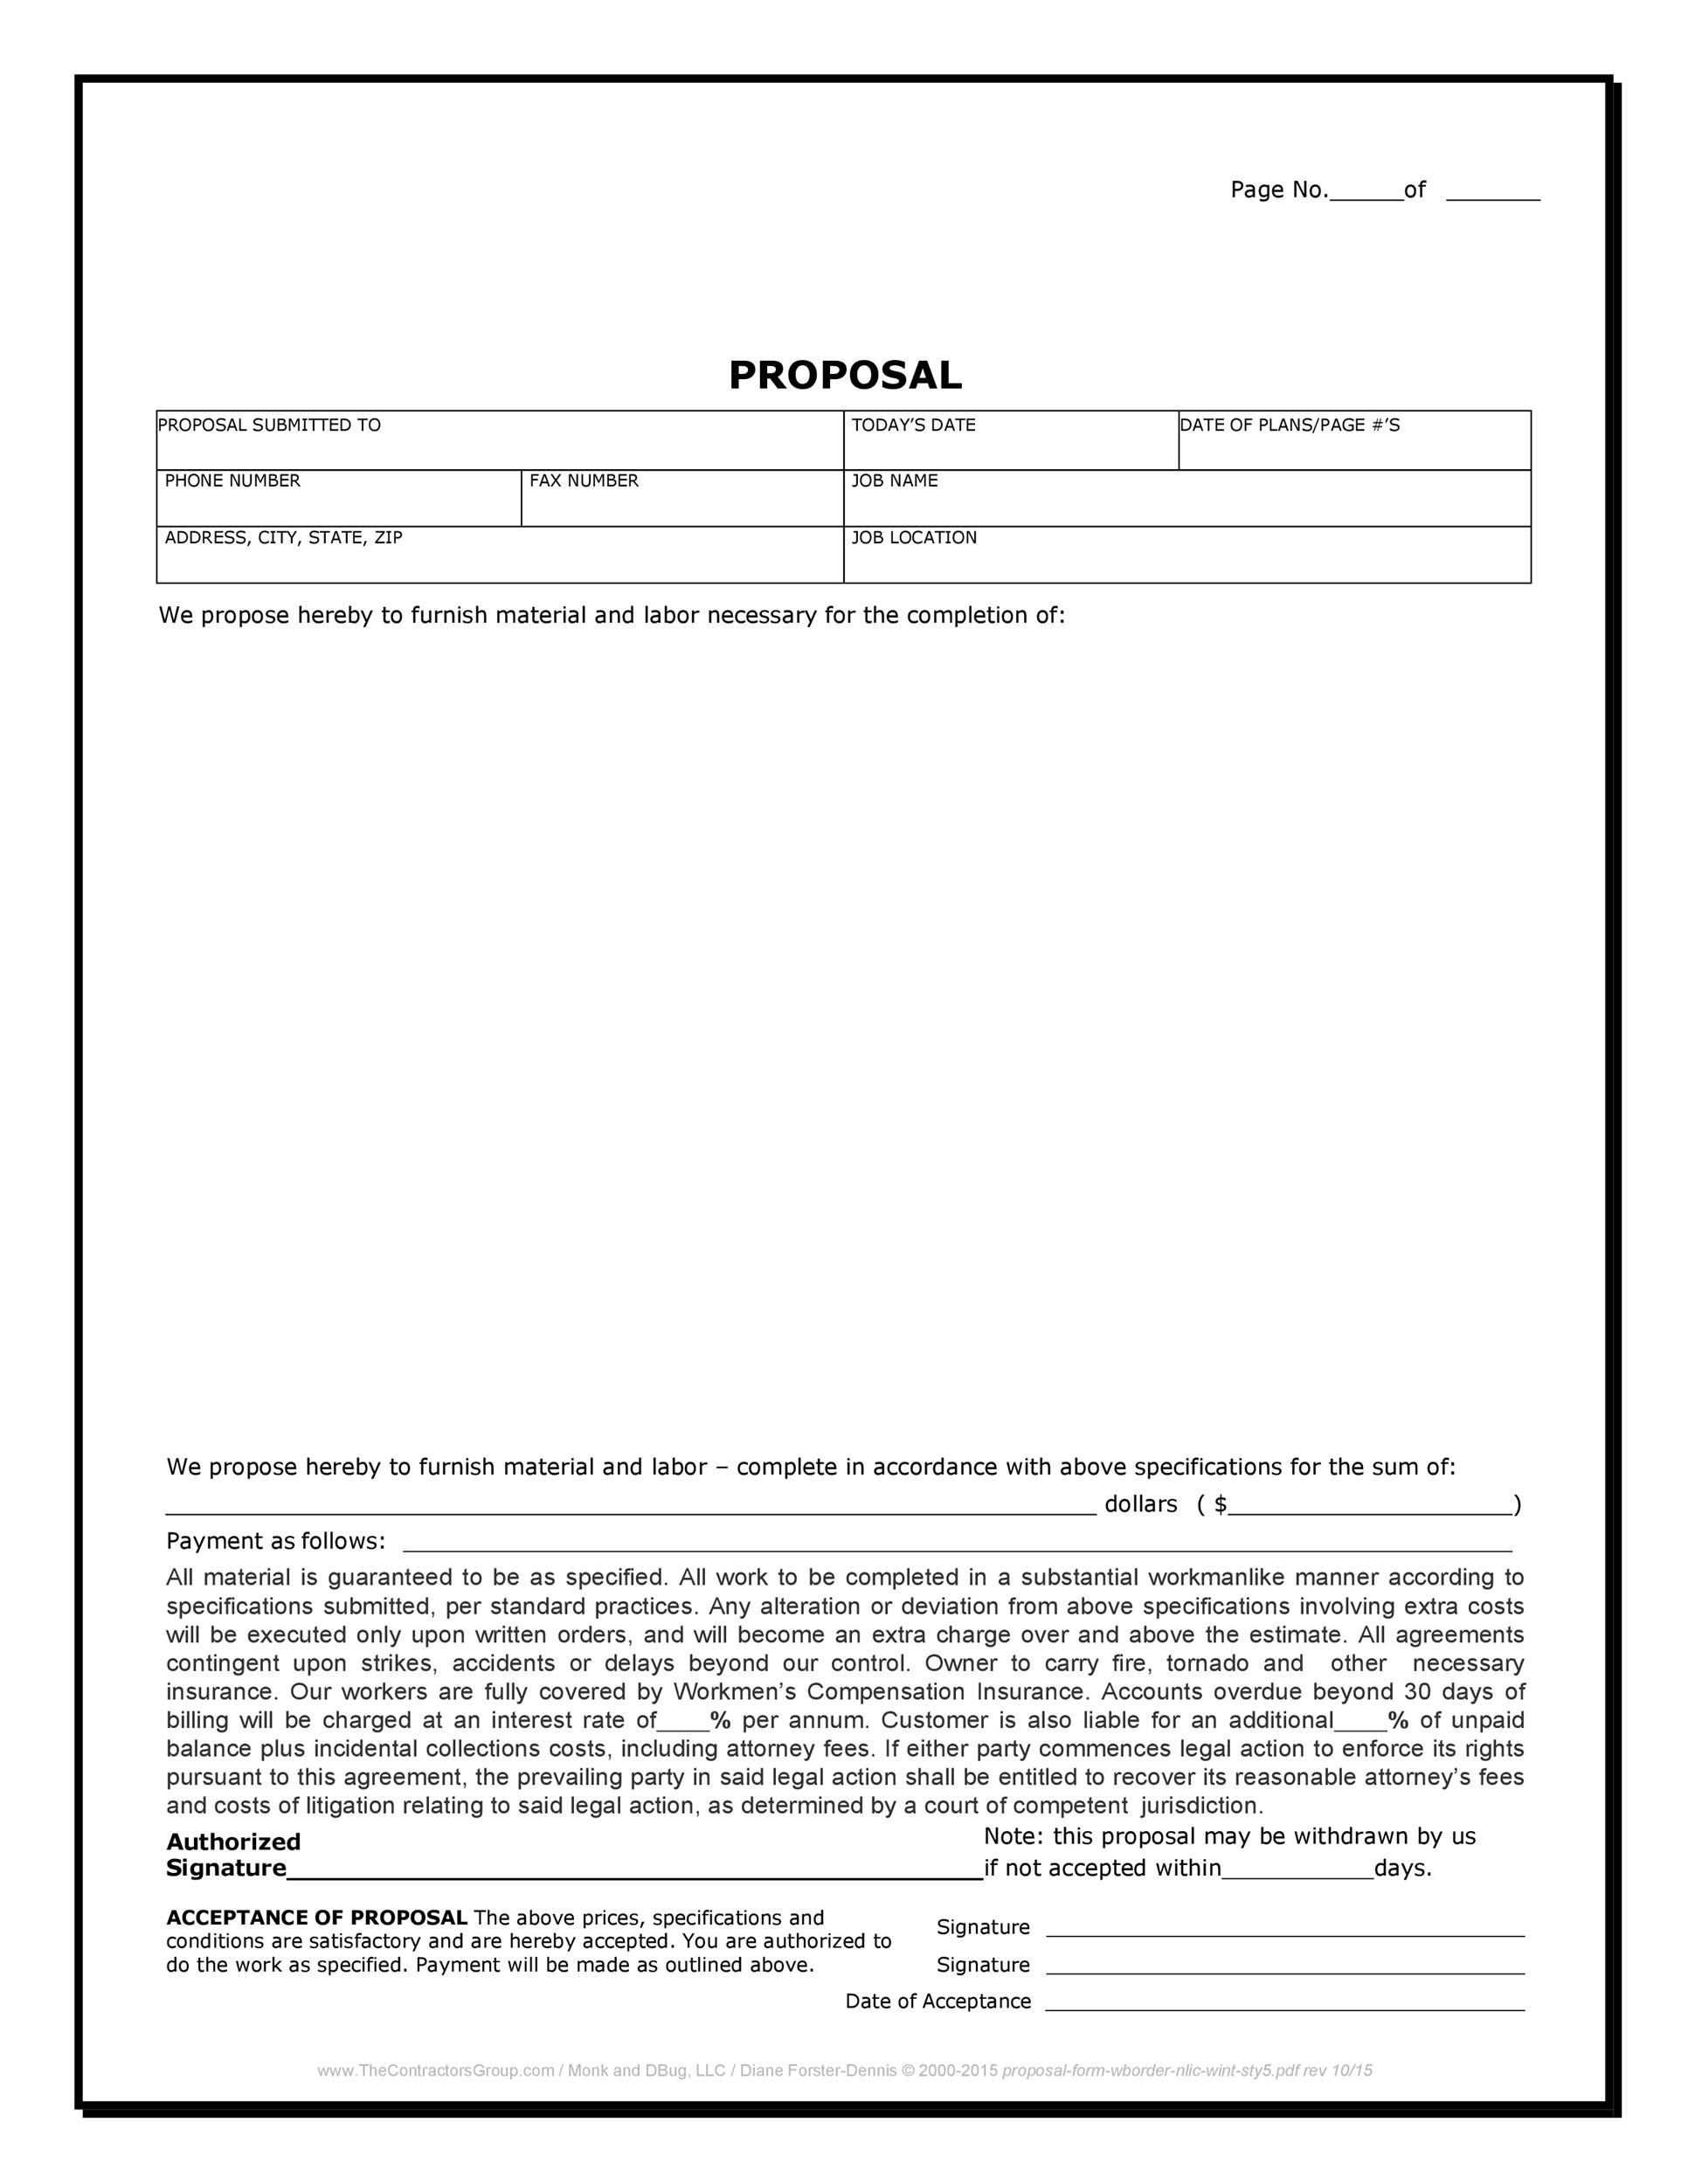 009 Archaicawful Construction Job Proposal Template Design  ExampleFull